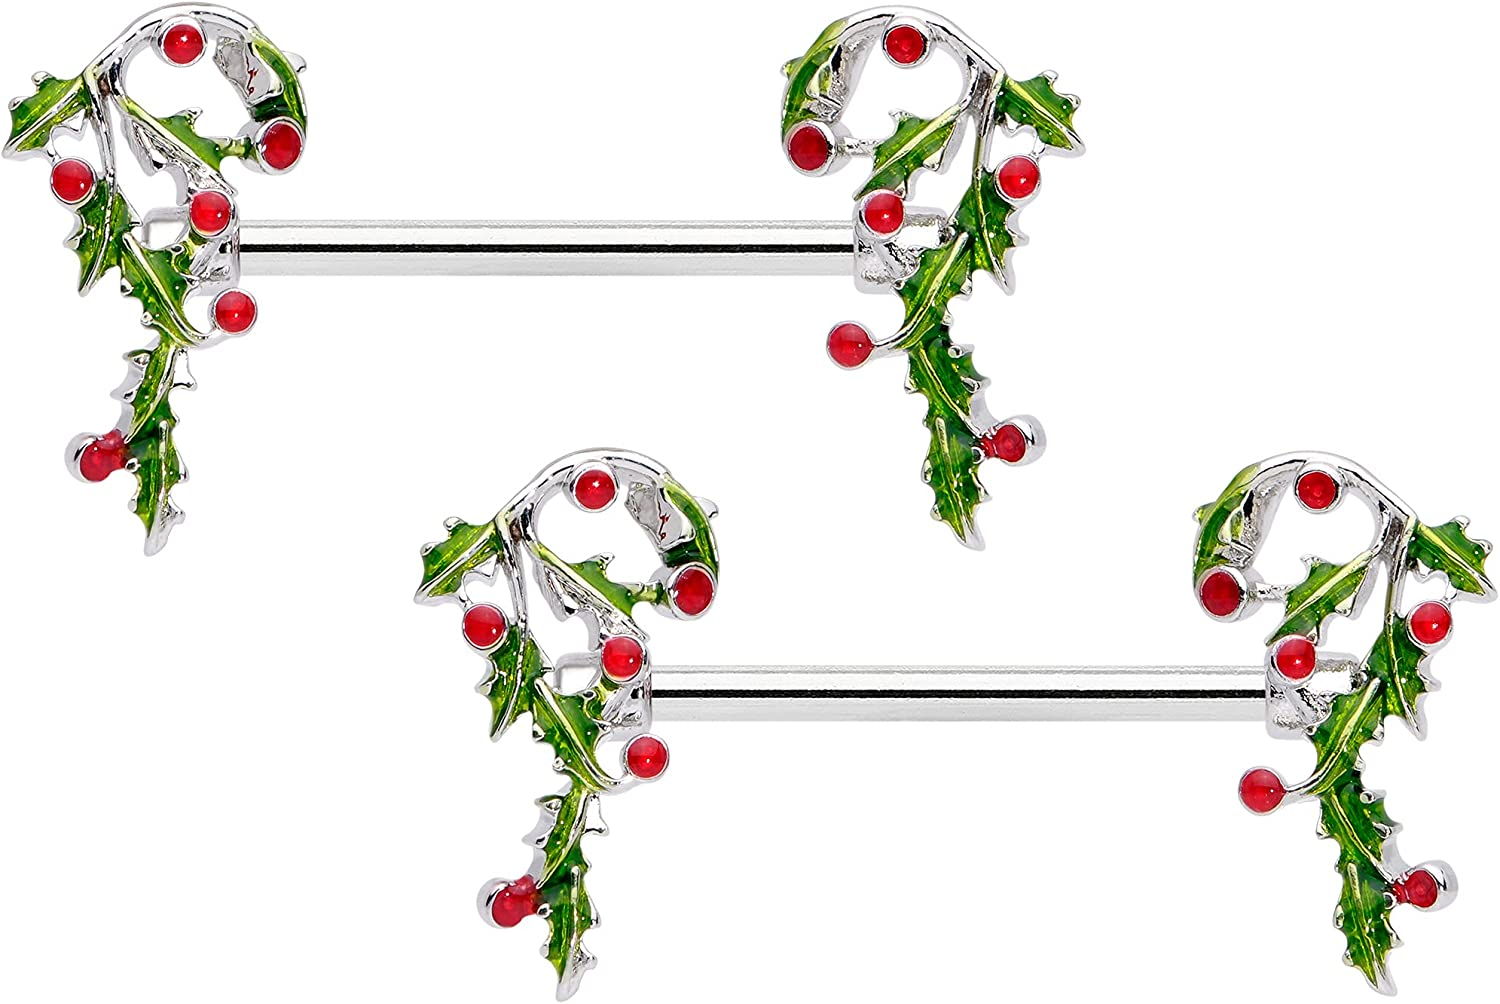 Body Candy 14G Womens Nipplerings Piercing Steel 2PC Holly Candy Cane Festive Nipple Ring Set 5/8